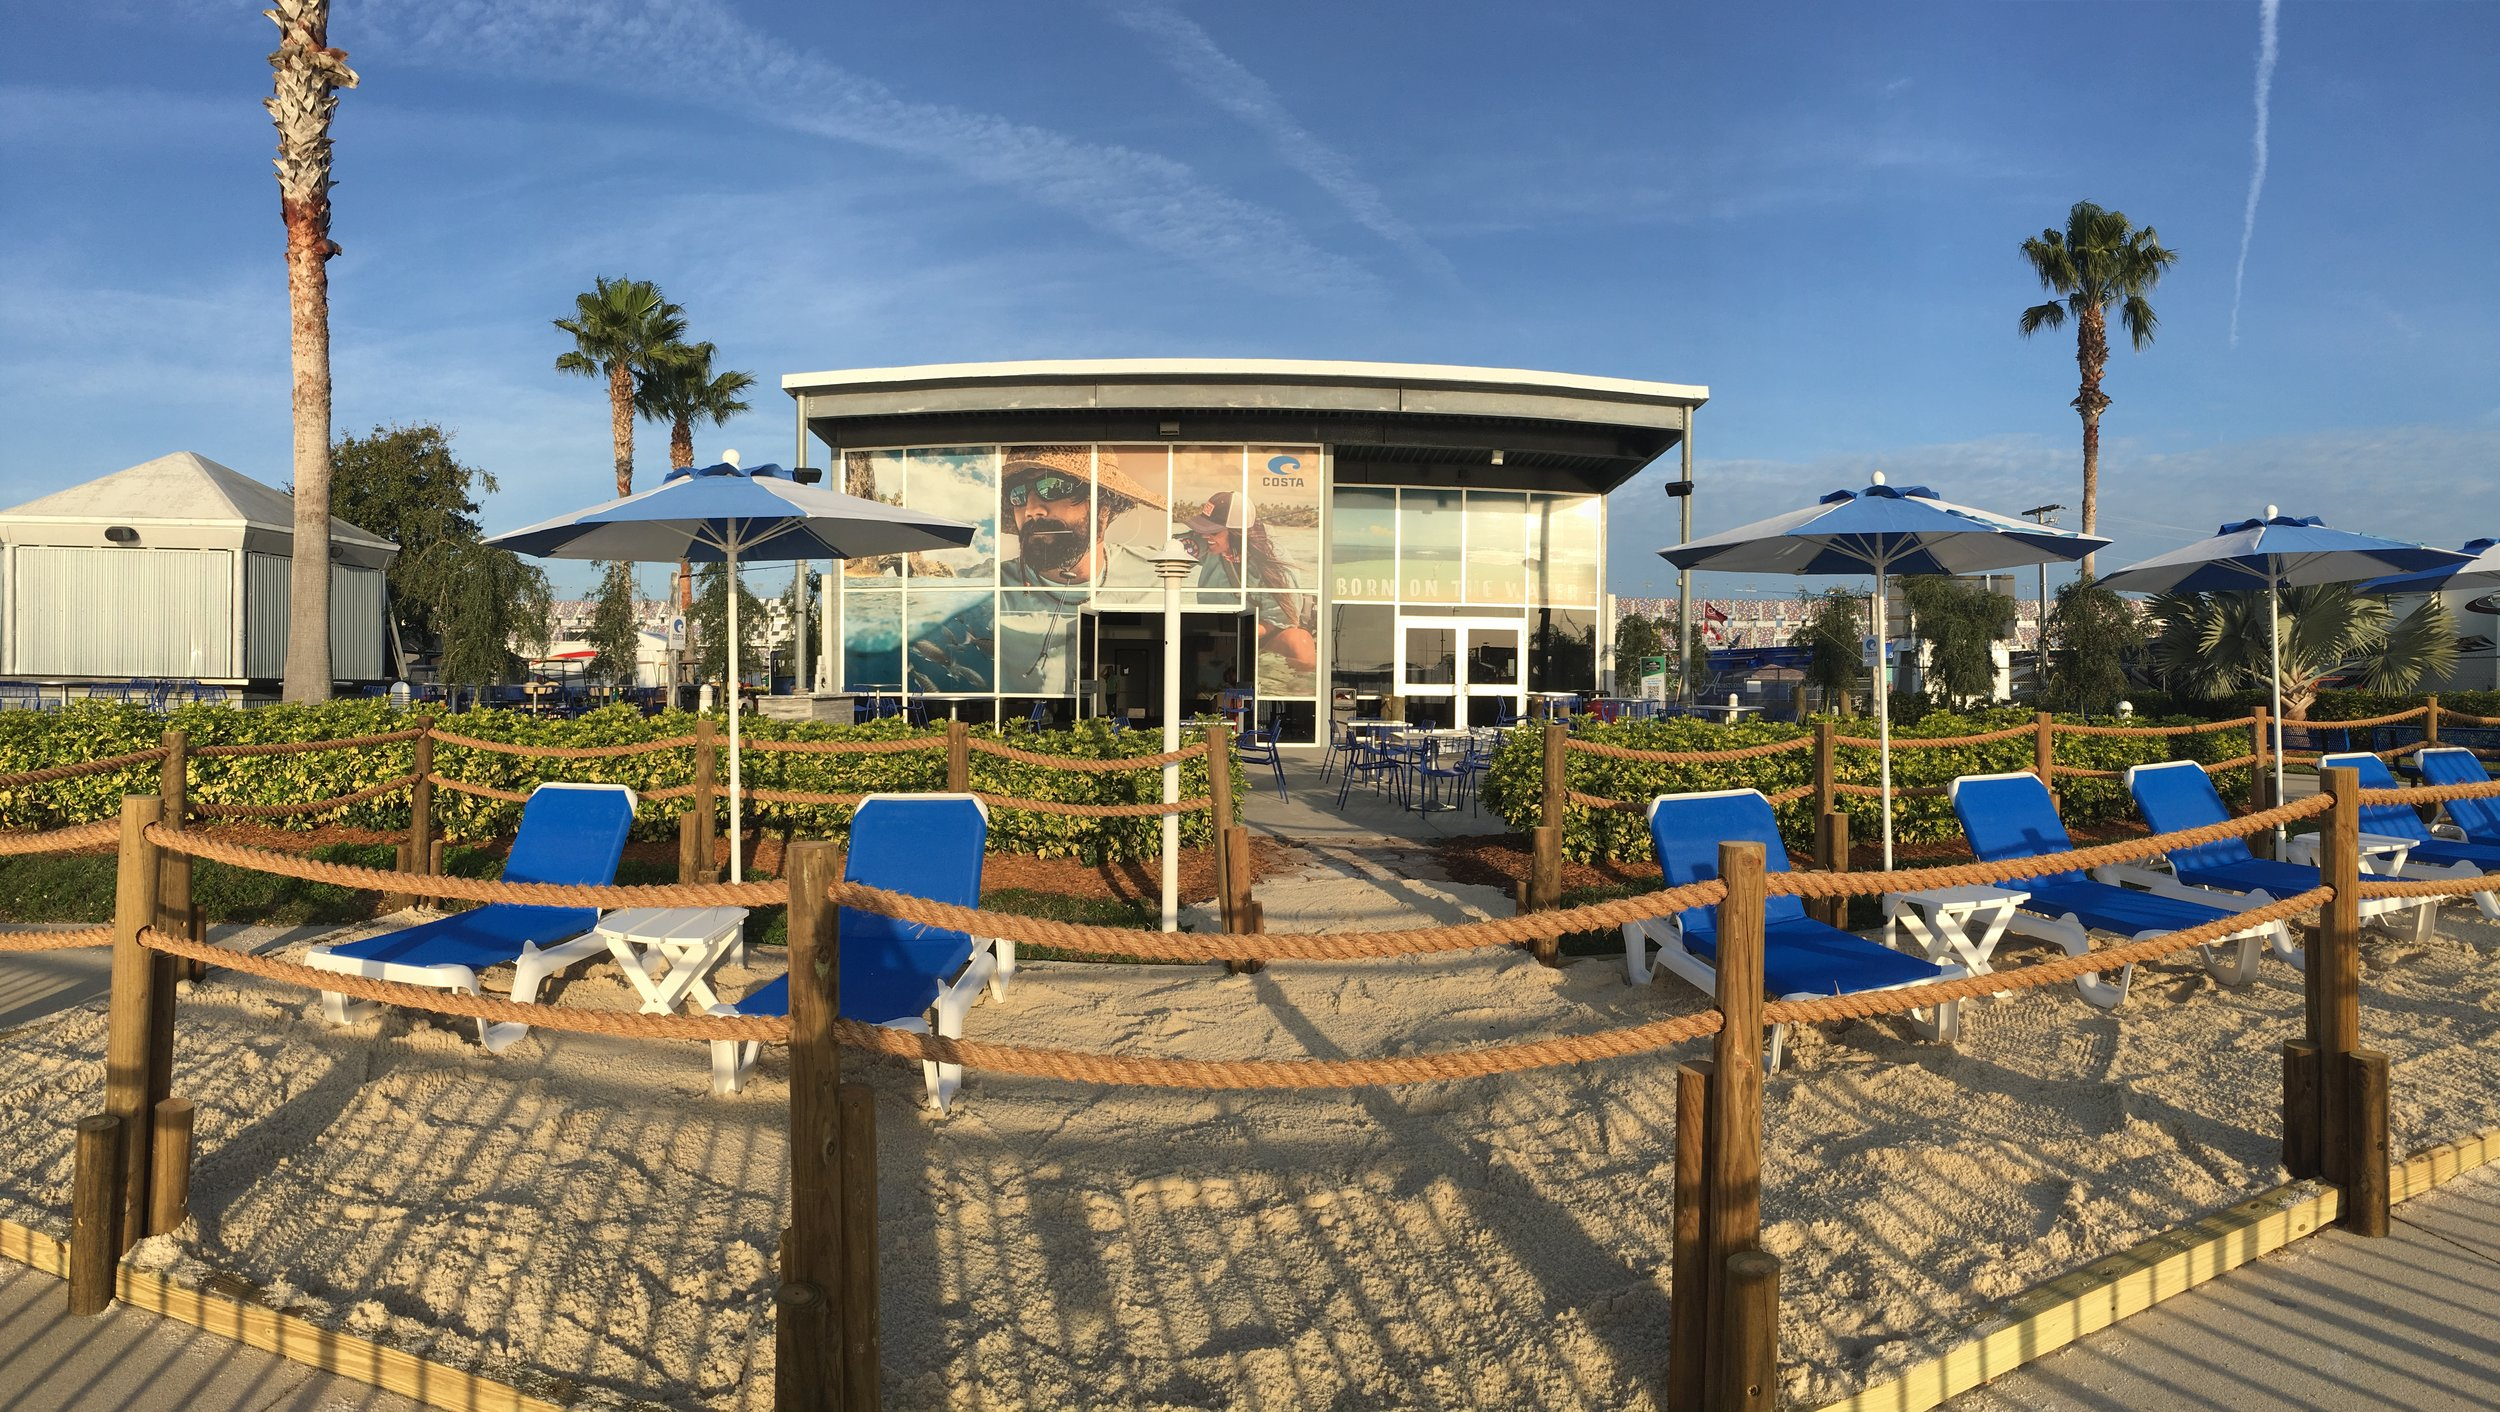 Custom Costa Beach at the Boardwalk Club (Daytona 500 Speedway)